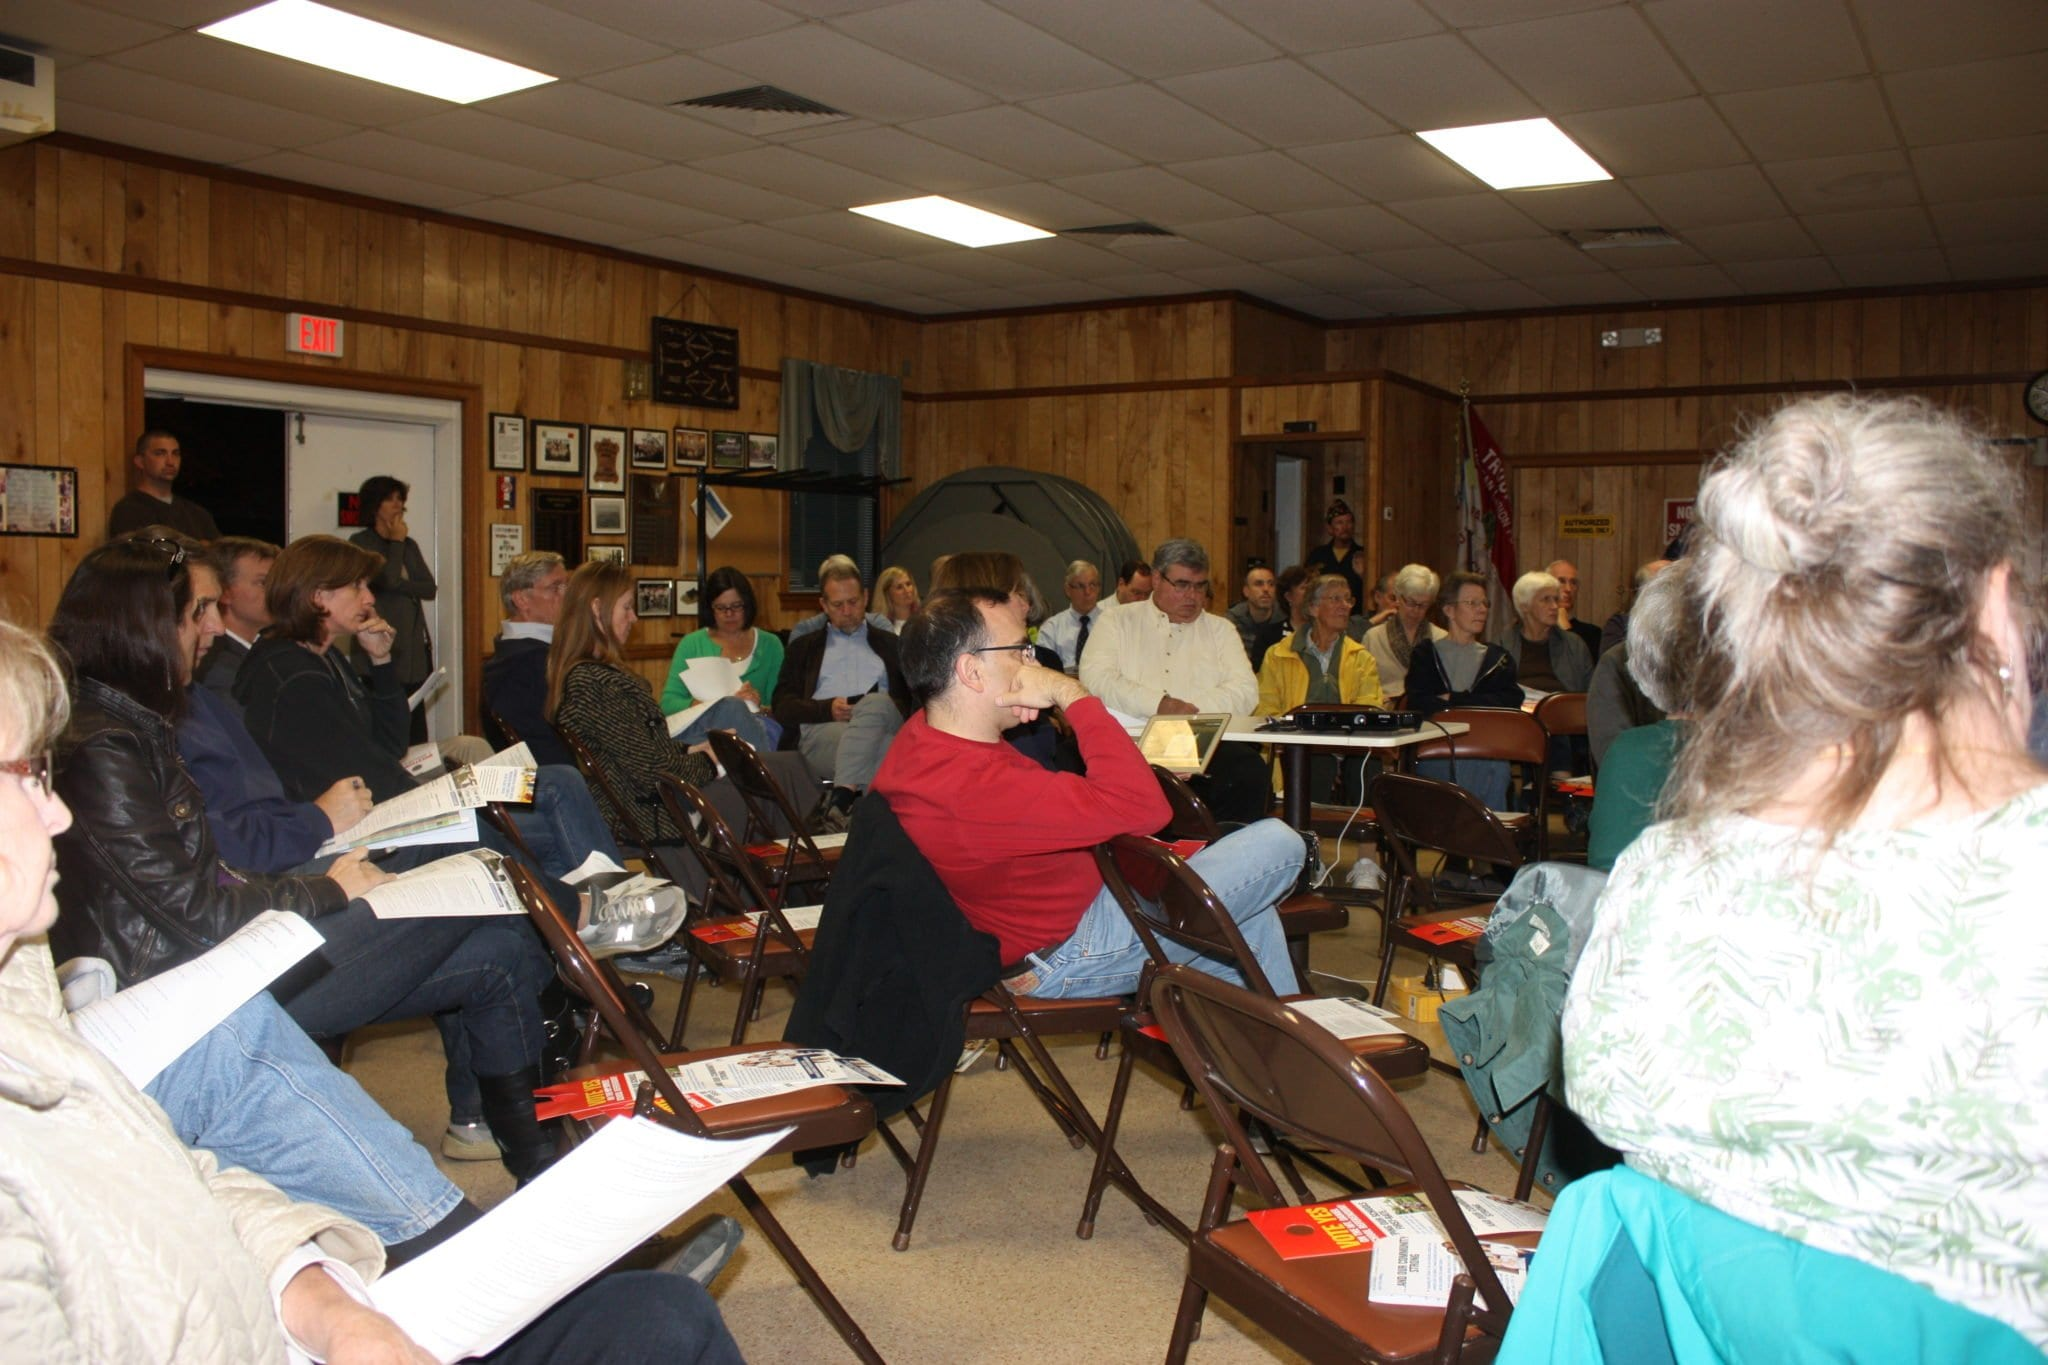 Proponents and opponents of the Mt. Daniel Elementary school bond referendum on the Nov. 4 ballot in Falls Church sparred for two hours in a lively forum at the American Legion Hall last Thursday night. (Photo: News-Press)